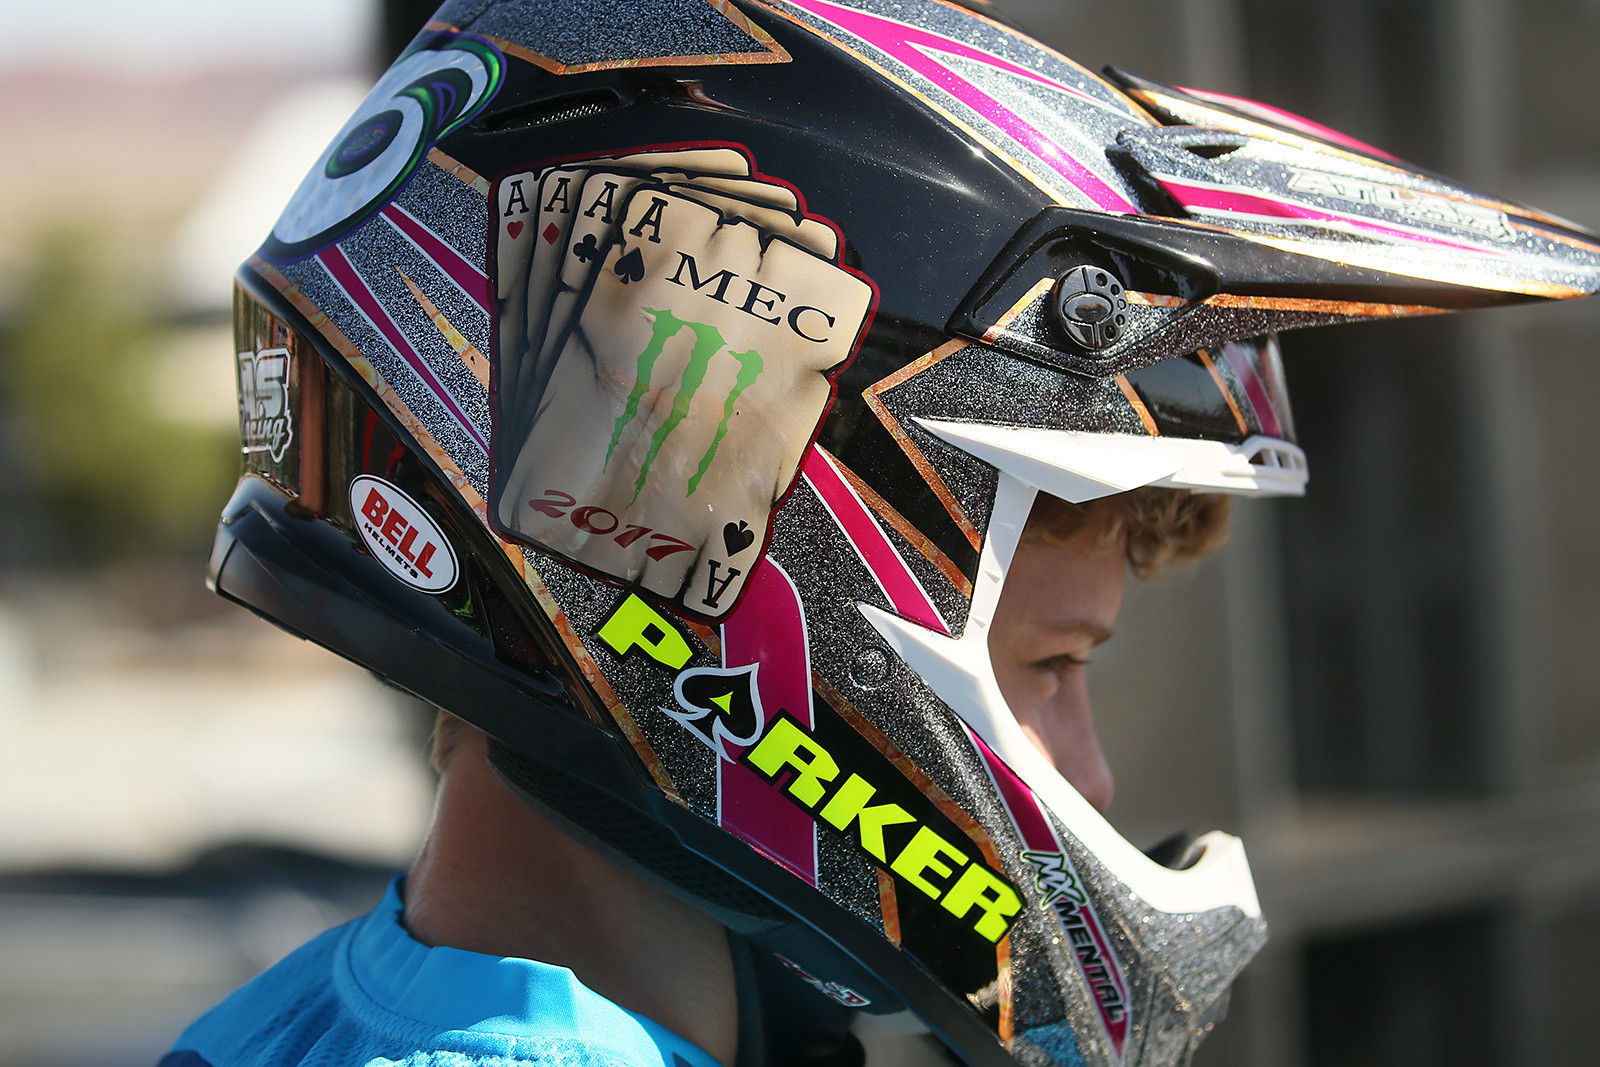 Parker Earl came to Vegas with an appropriately-themed helmet for the Supermini race.